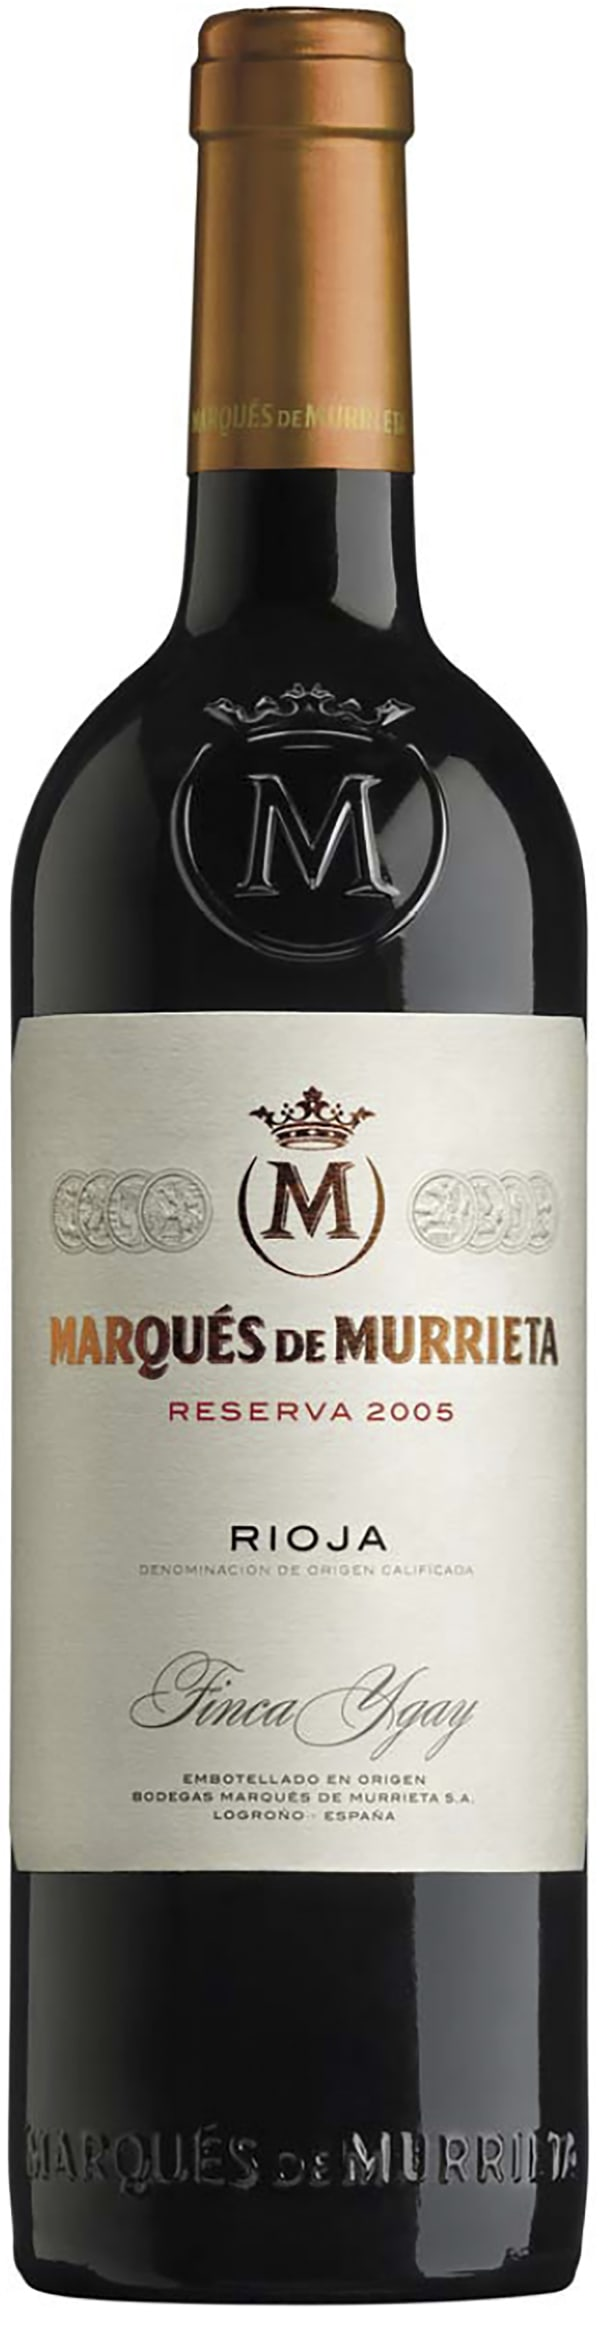 Marques de Murrieta Reserva